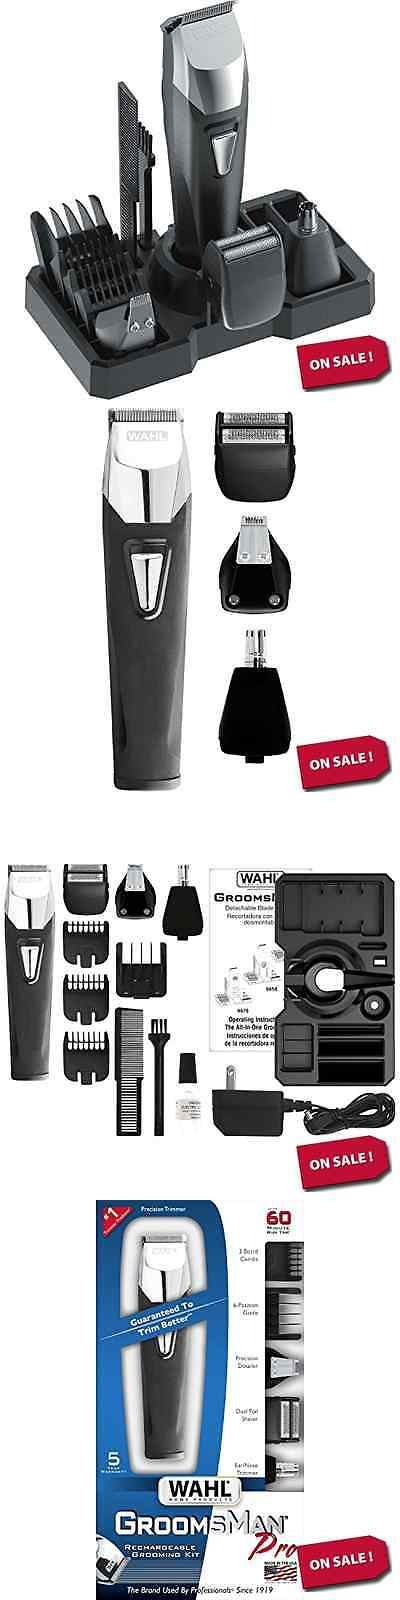 Clippers and Trimmers: Wahl Rechargeable Men Grooming All In 1 Hair Beard Mustache Trimmer Kit New BUY IT NOW ONLY: $39.96